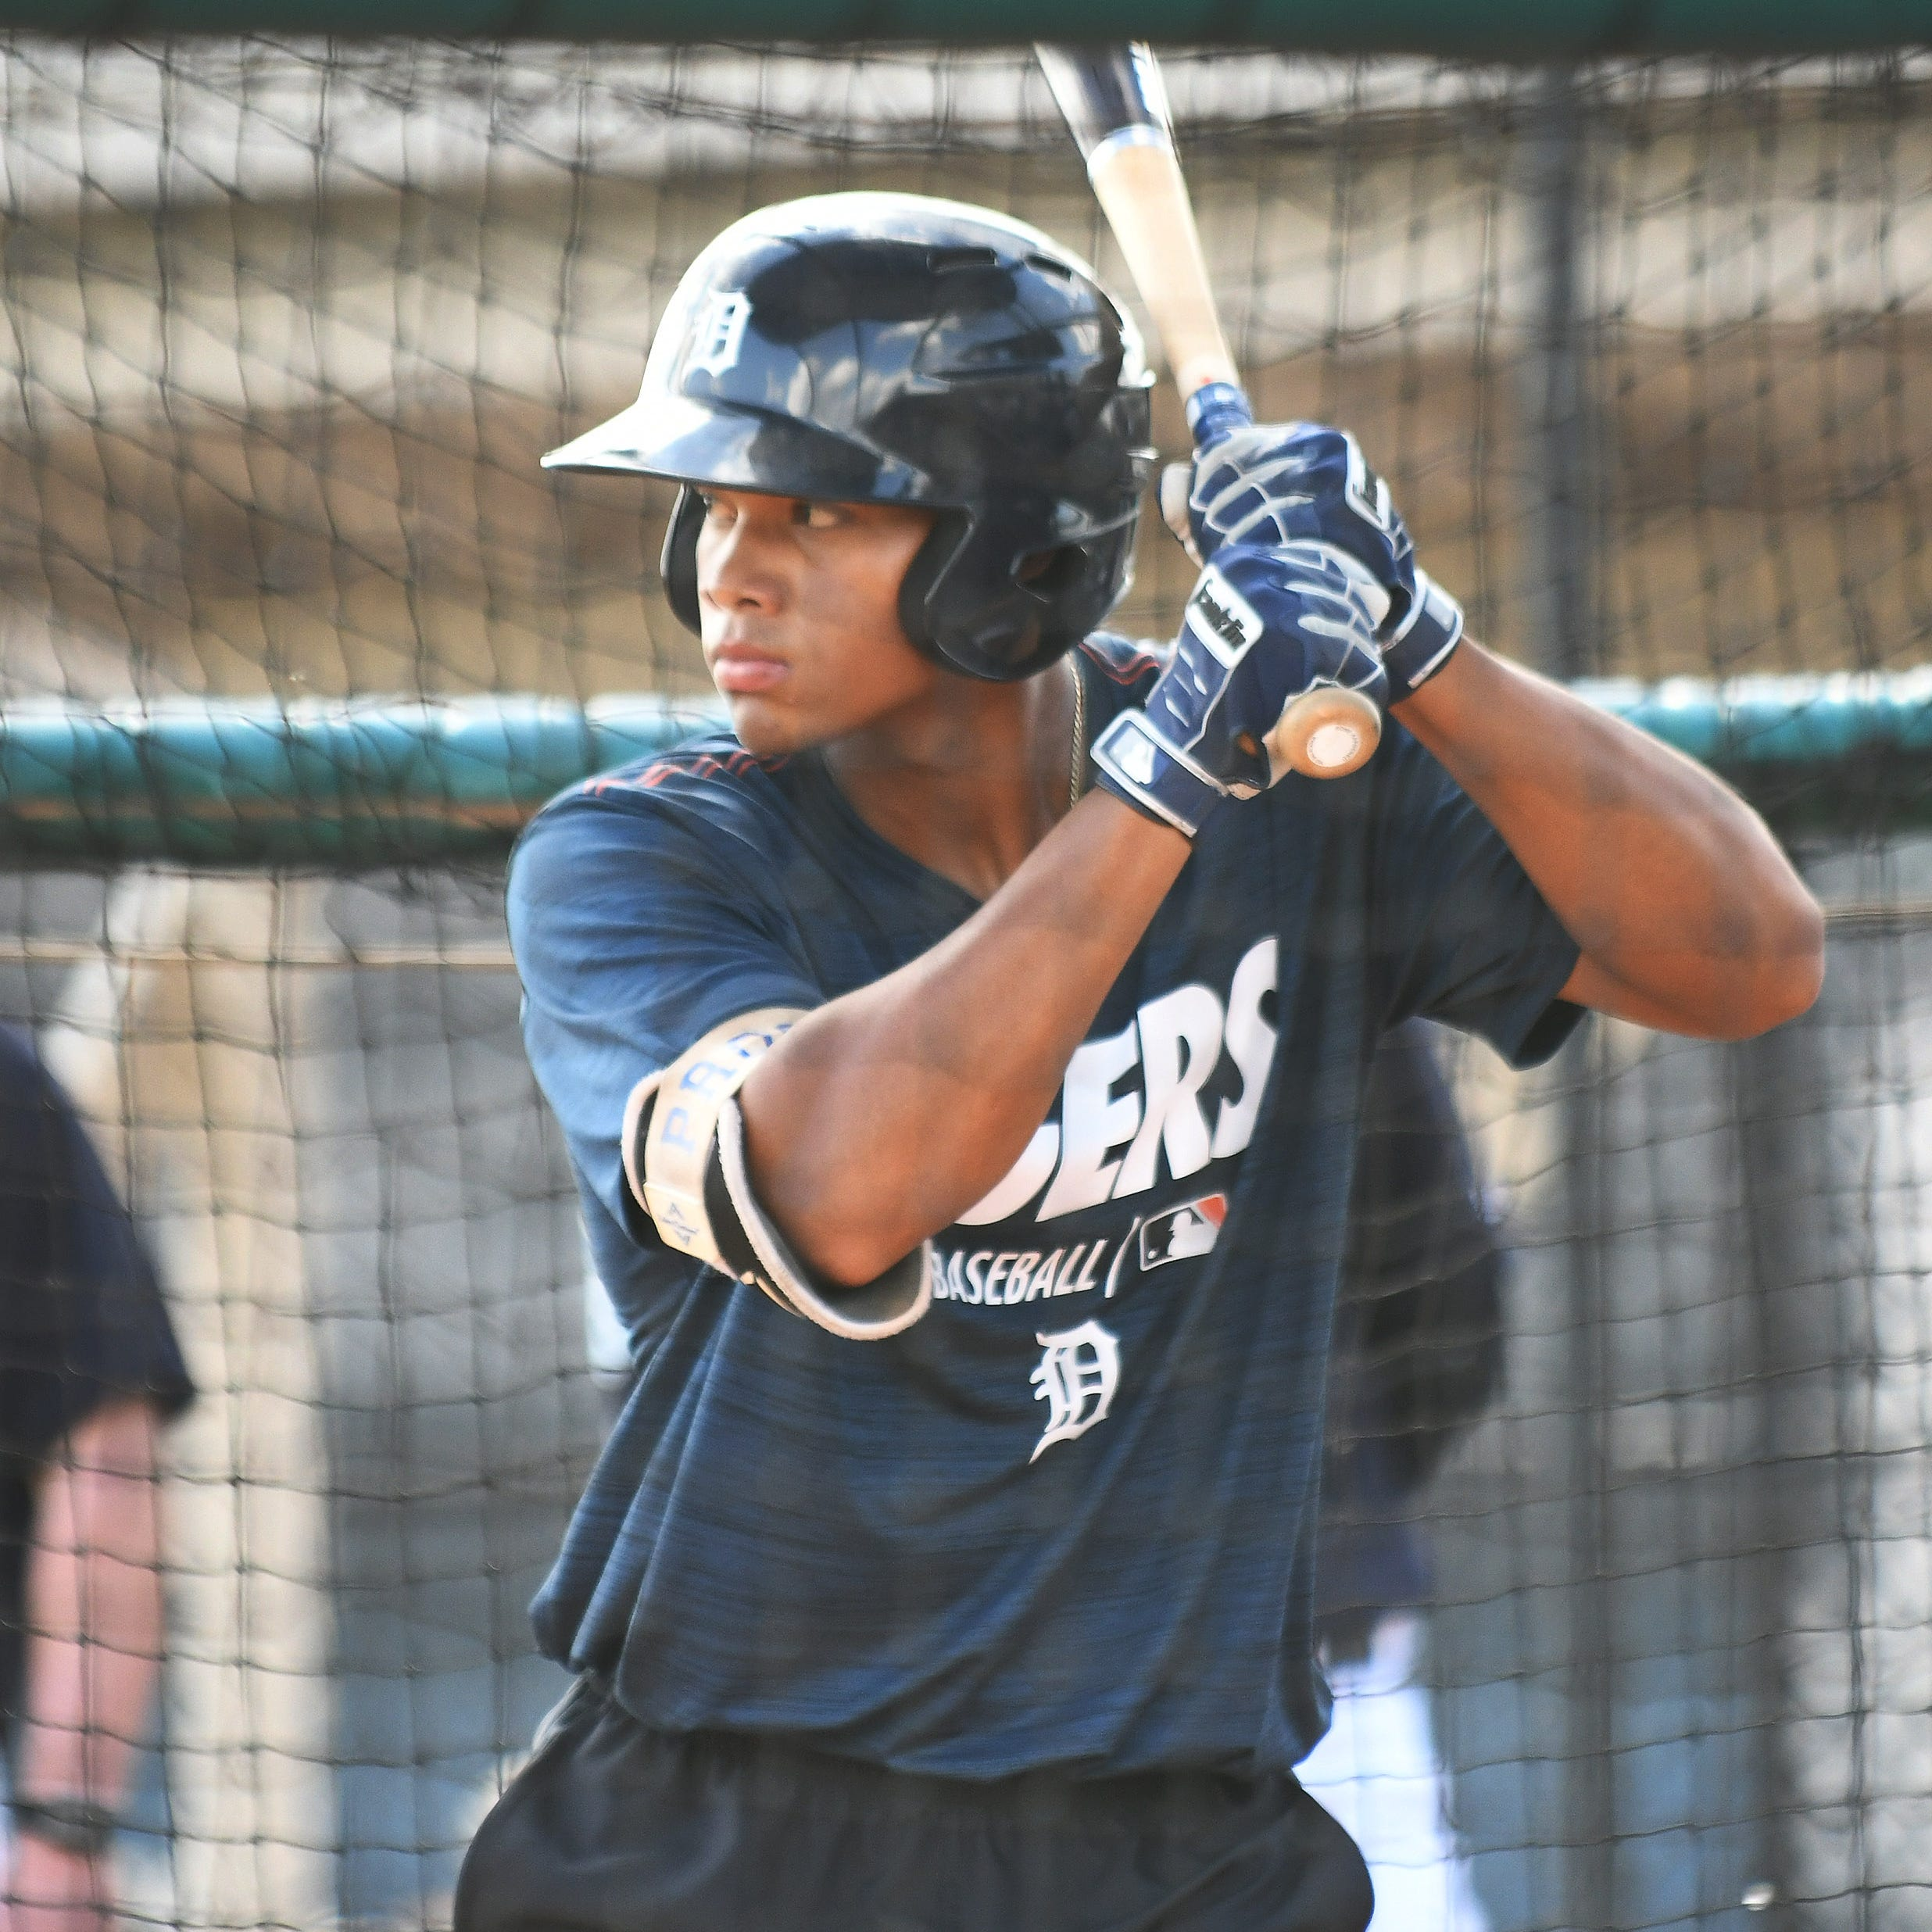 Tigers prospect Wenceel Perez, Whitecaps hope to heat up as summer approaches